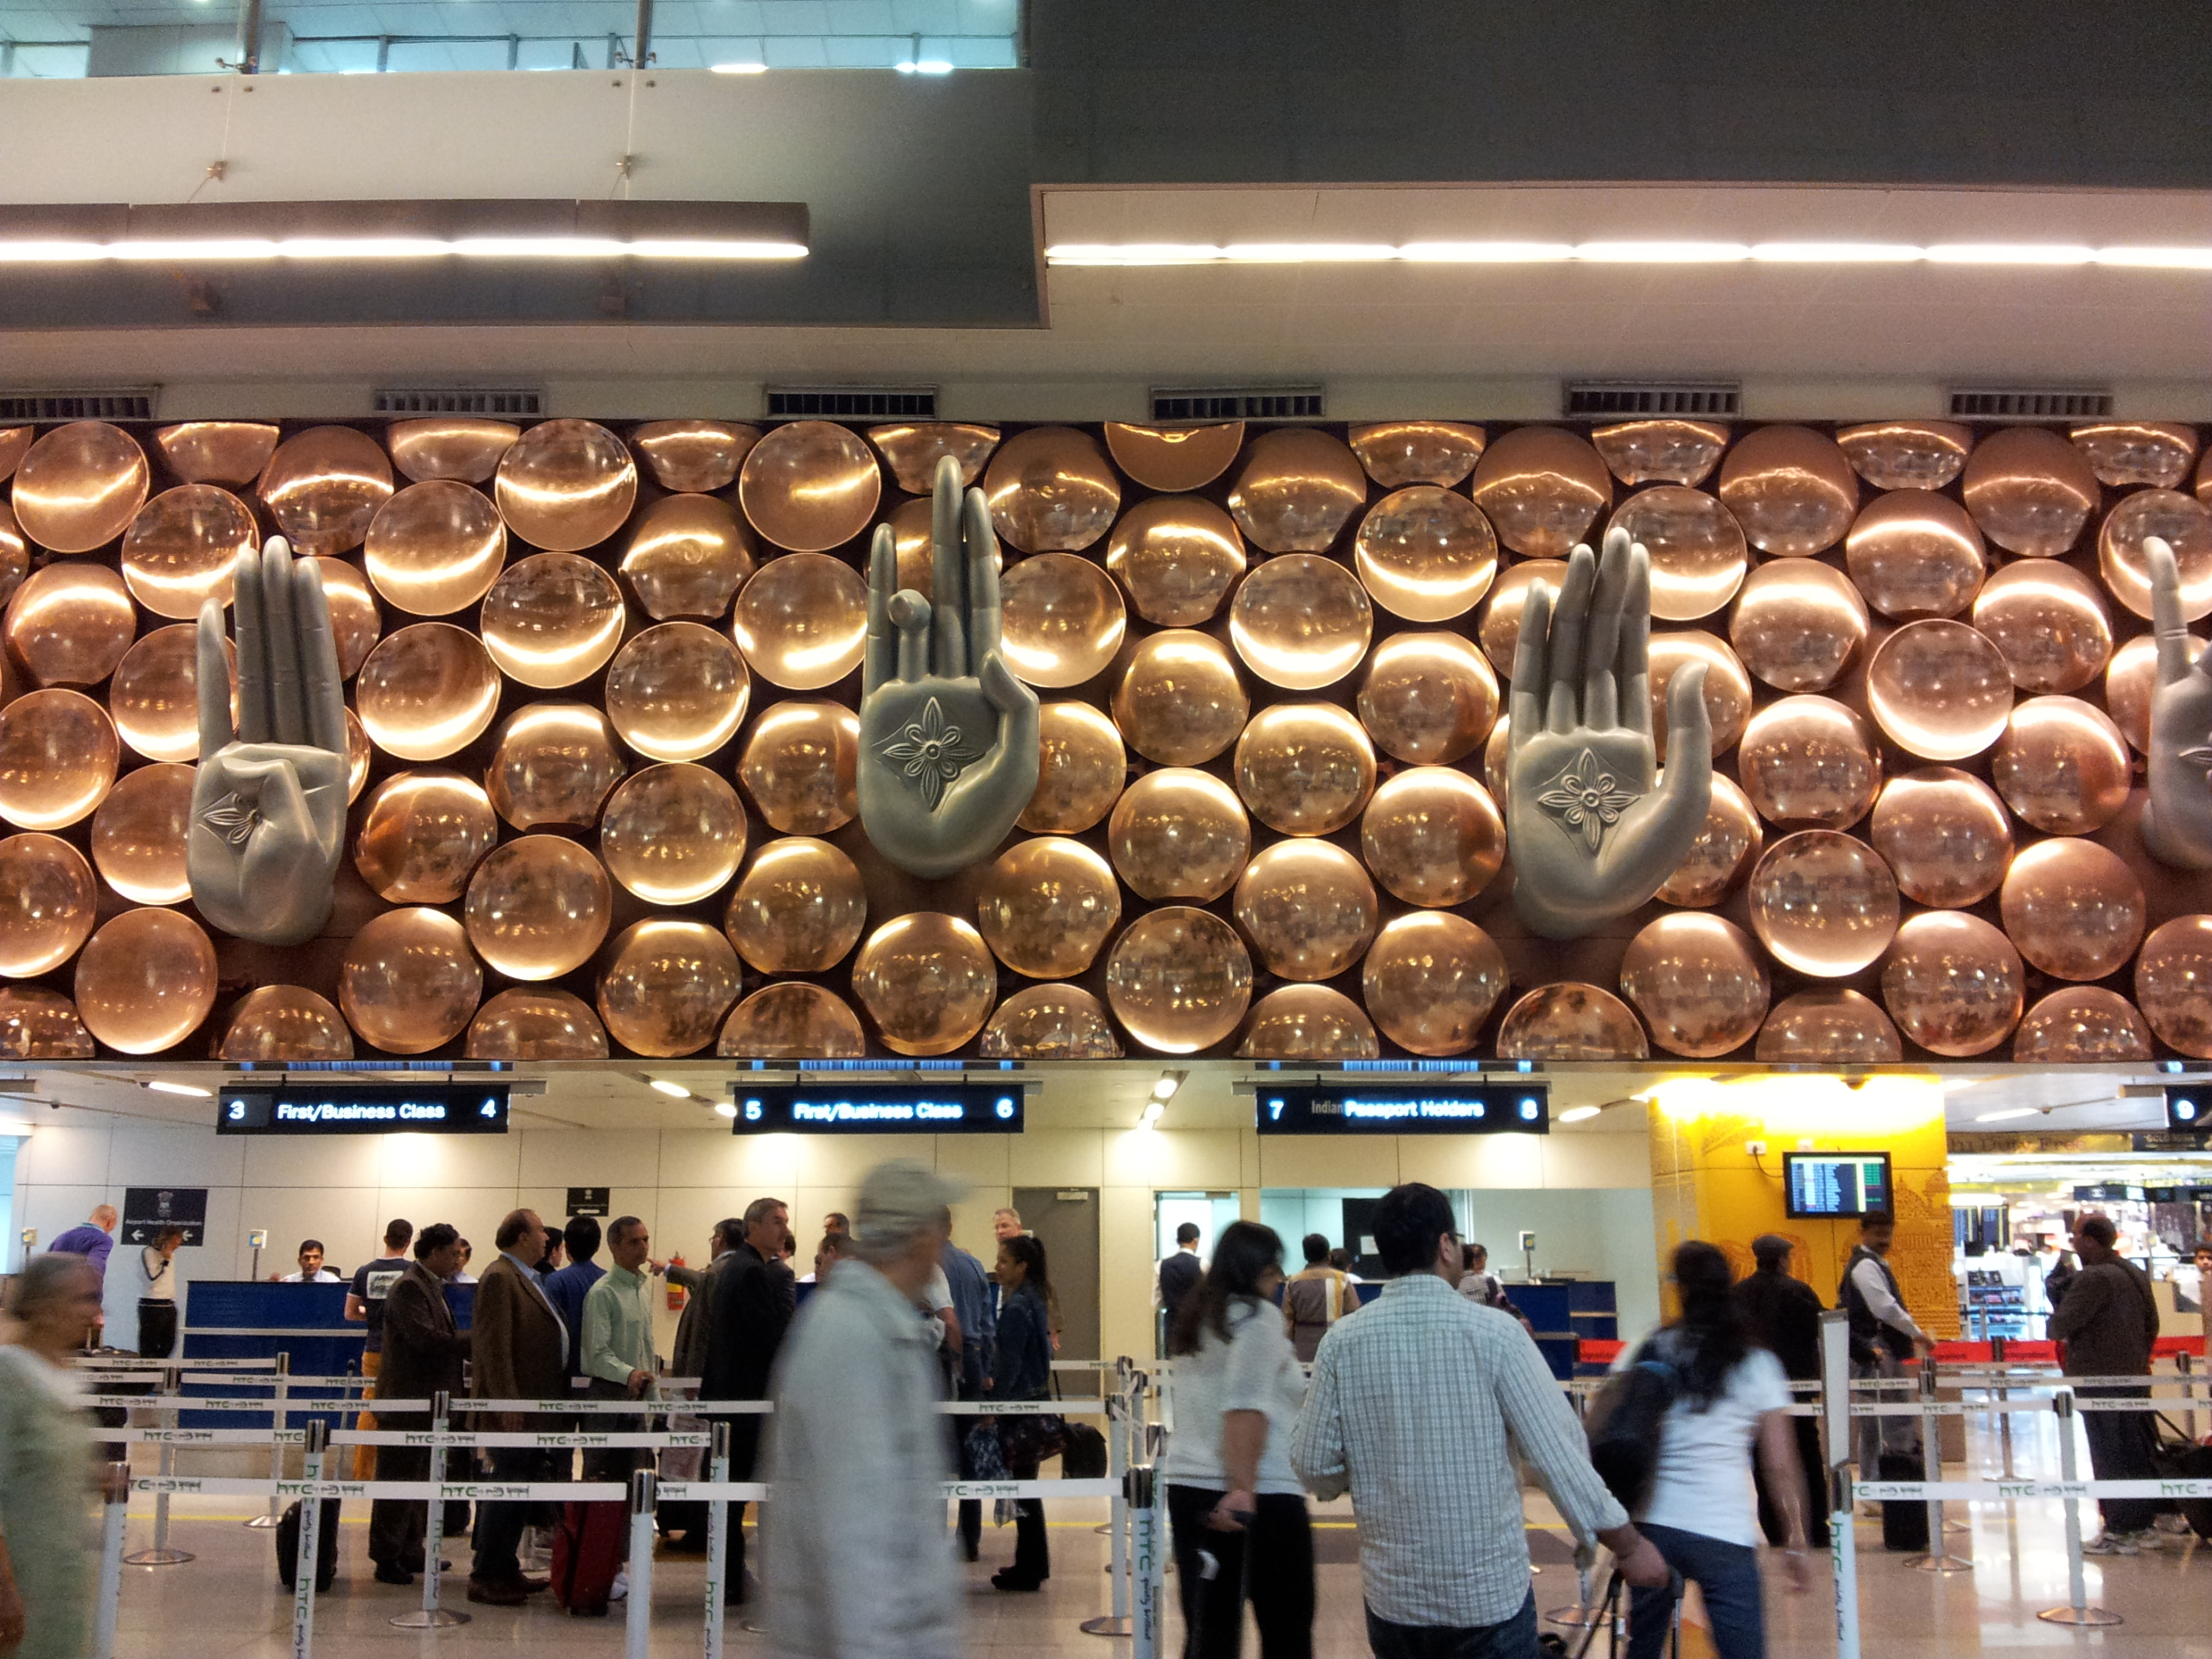 Delhi Airport, Travel to India, Travel India, Arriving in Delhi